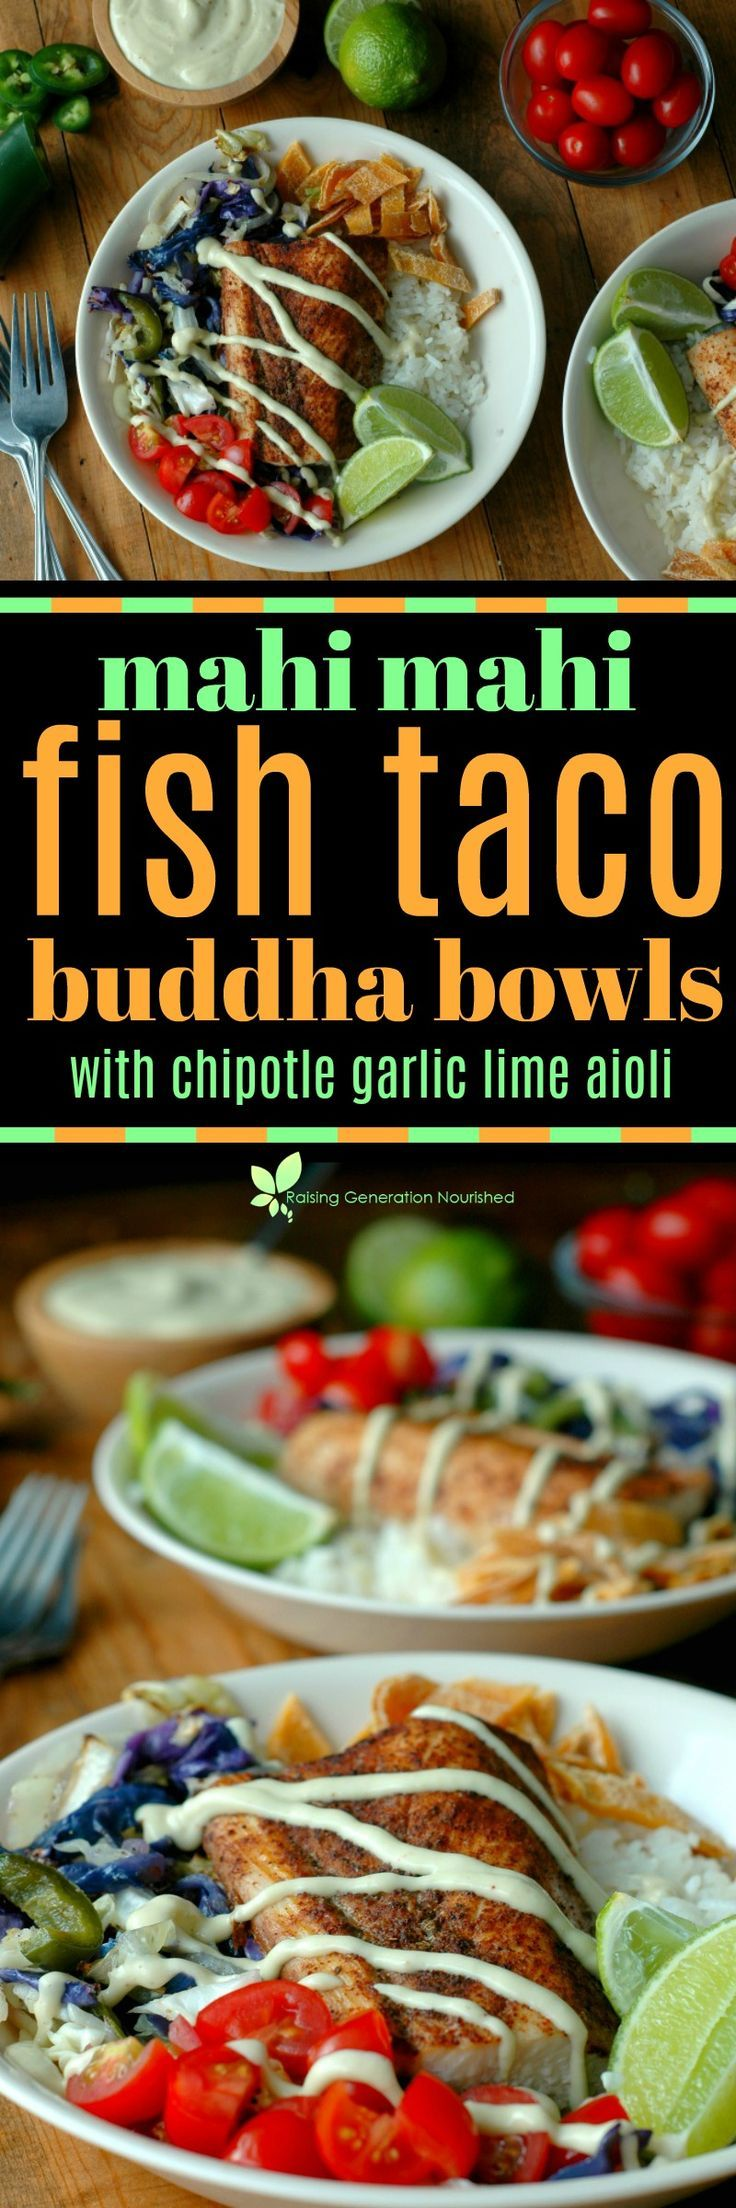 """Quick prep """"fish taco"""" inspired Buddhabowls the whole family will love!"""